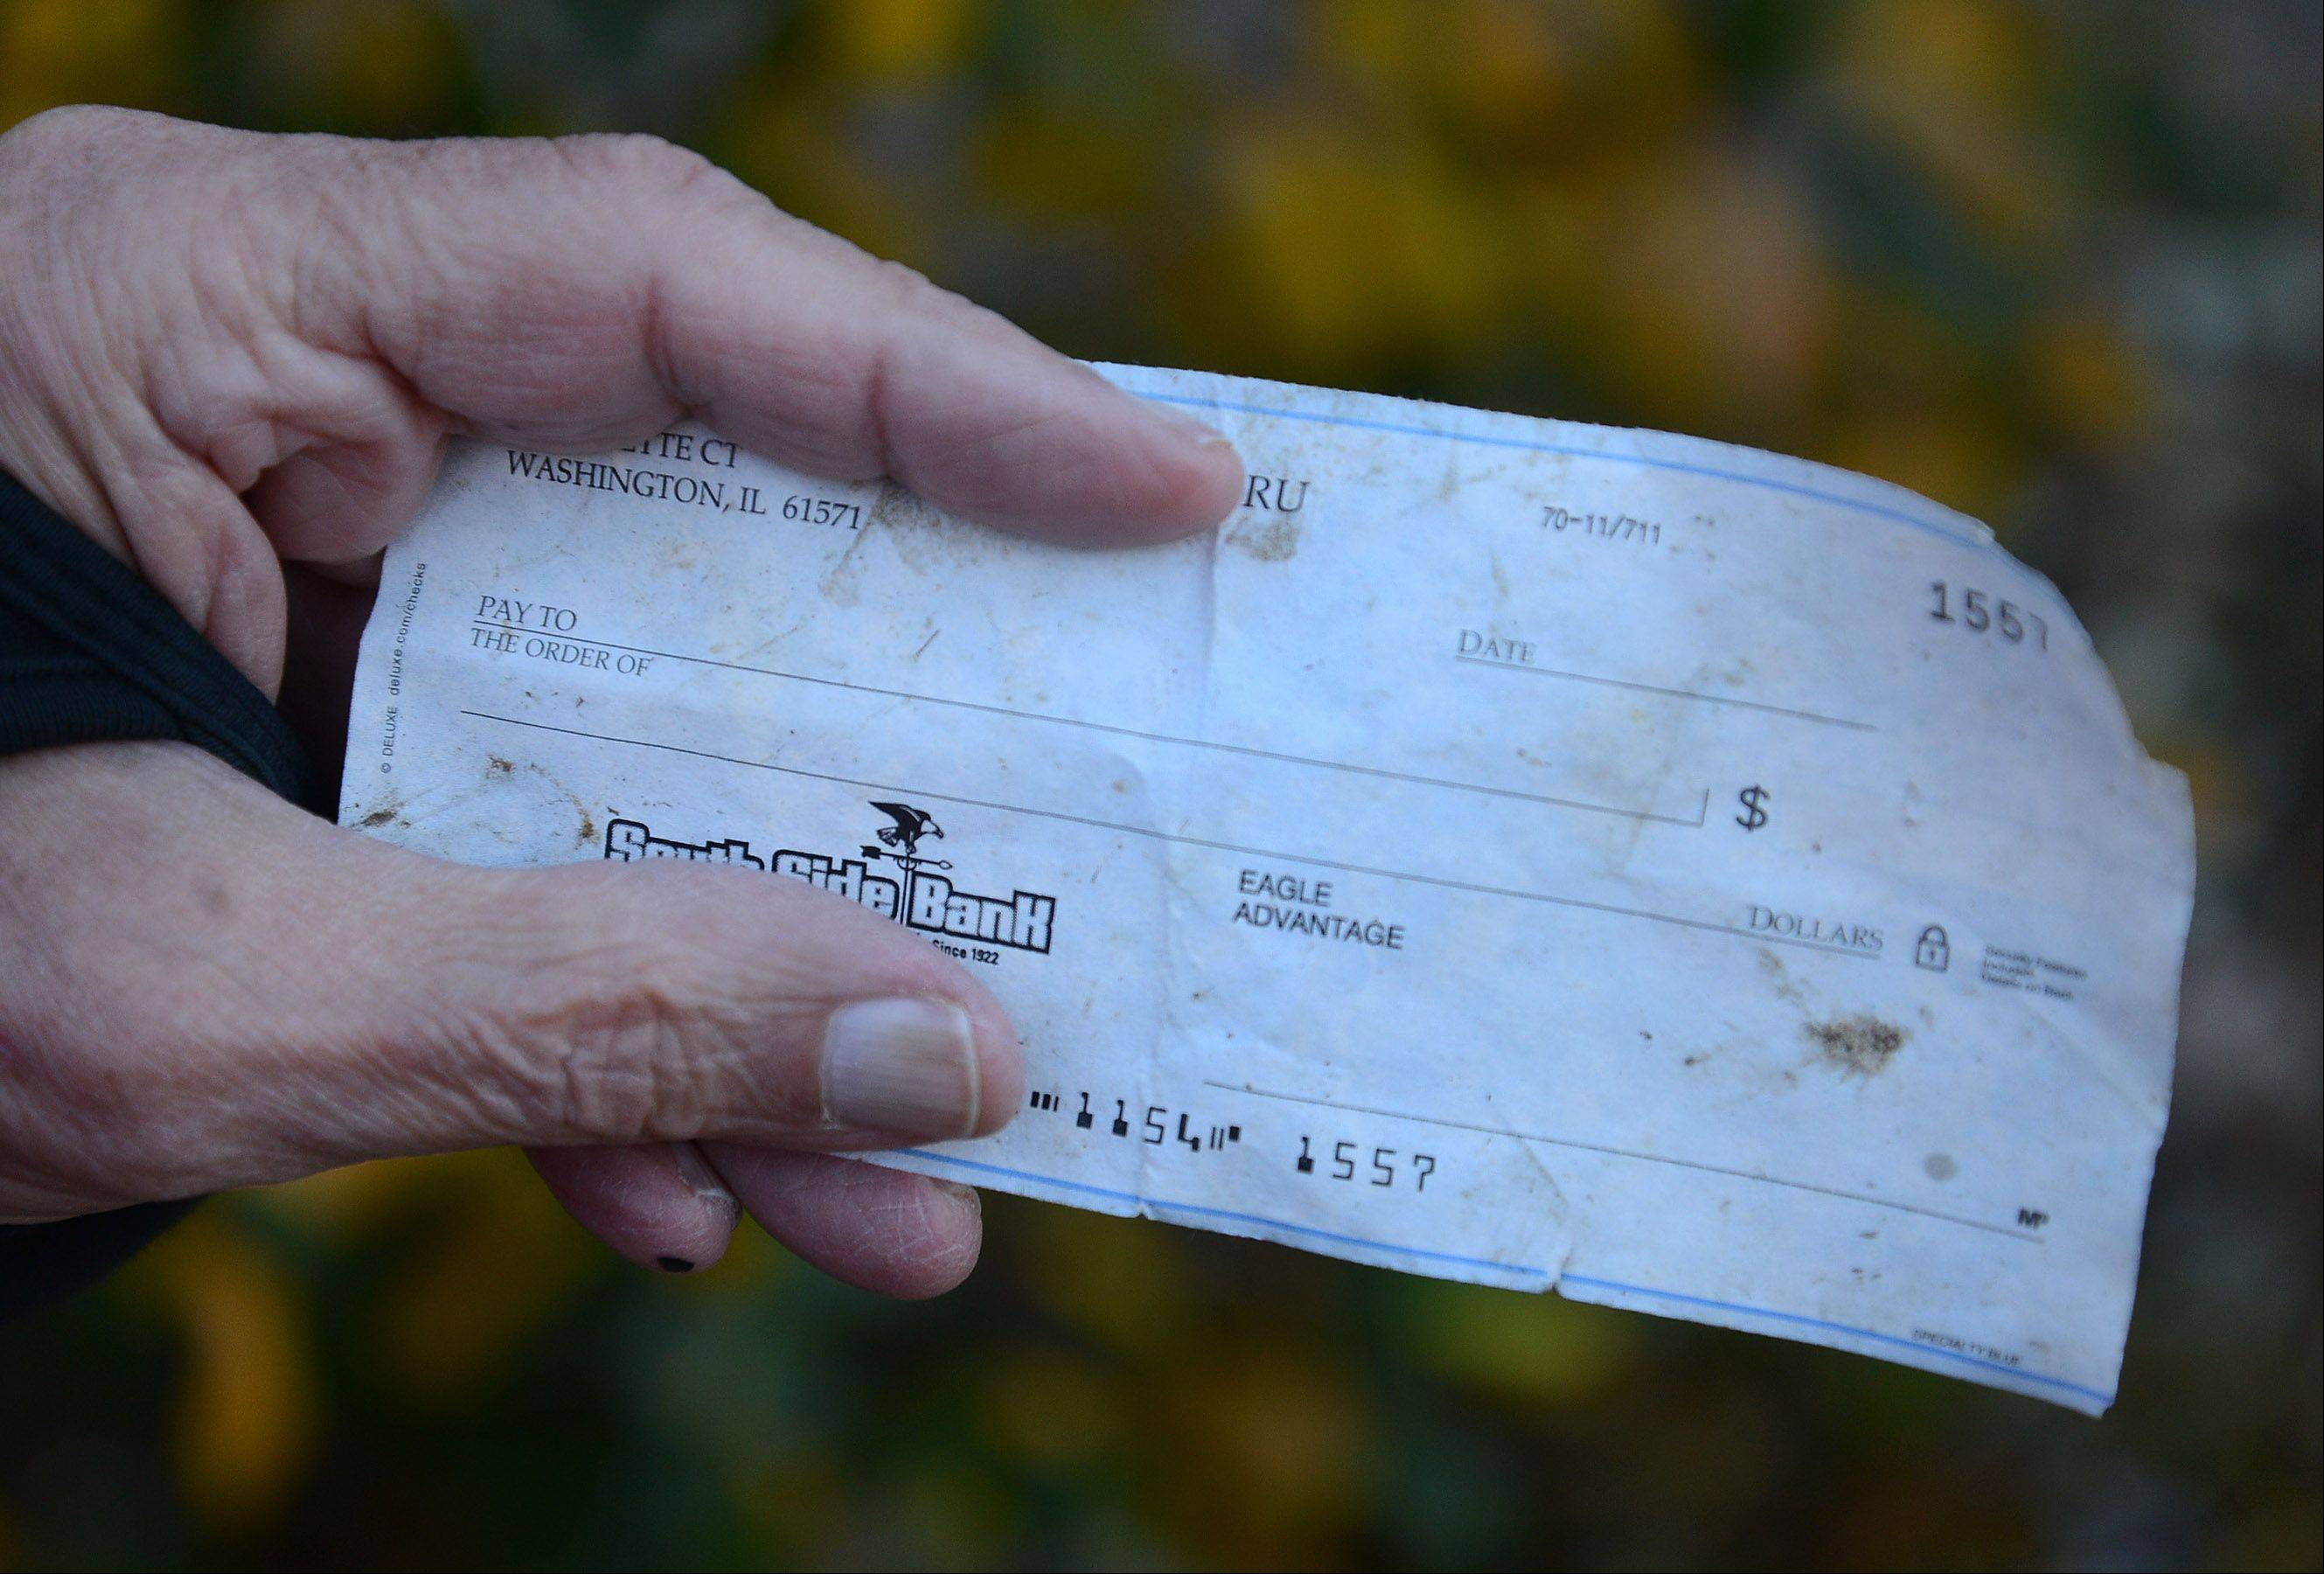 Lou Blanc of Arlington Heights found in his front yard a blank check from the city of Washington, Ill., the town devastated from Sunday's tornado.